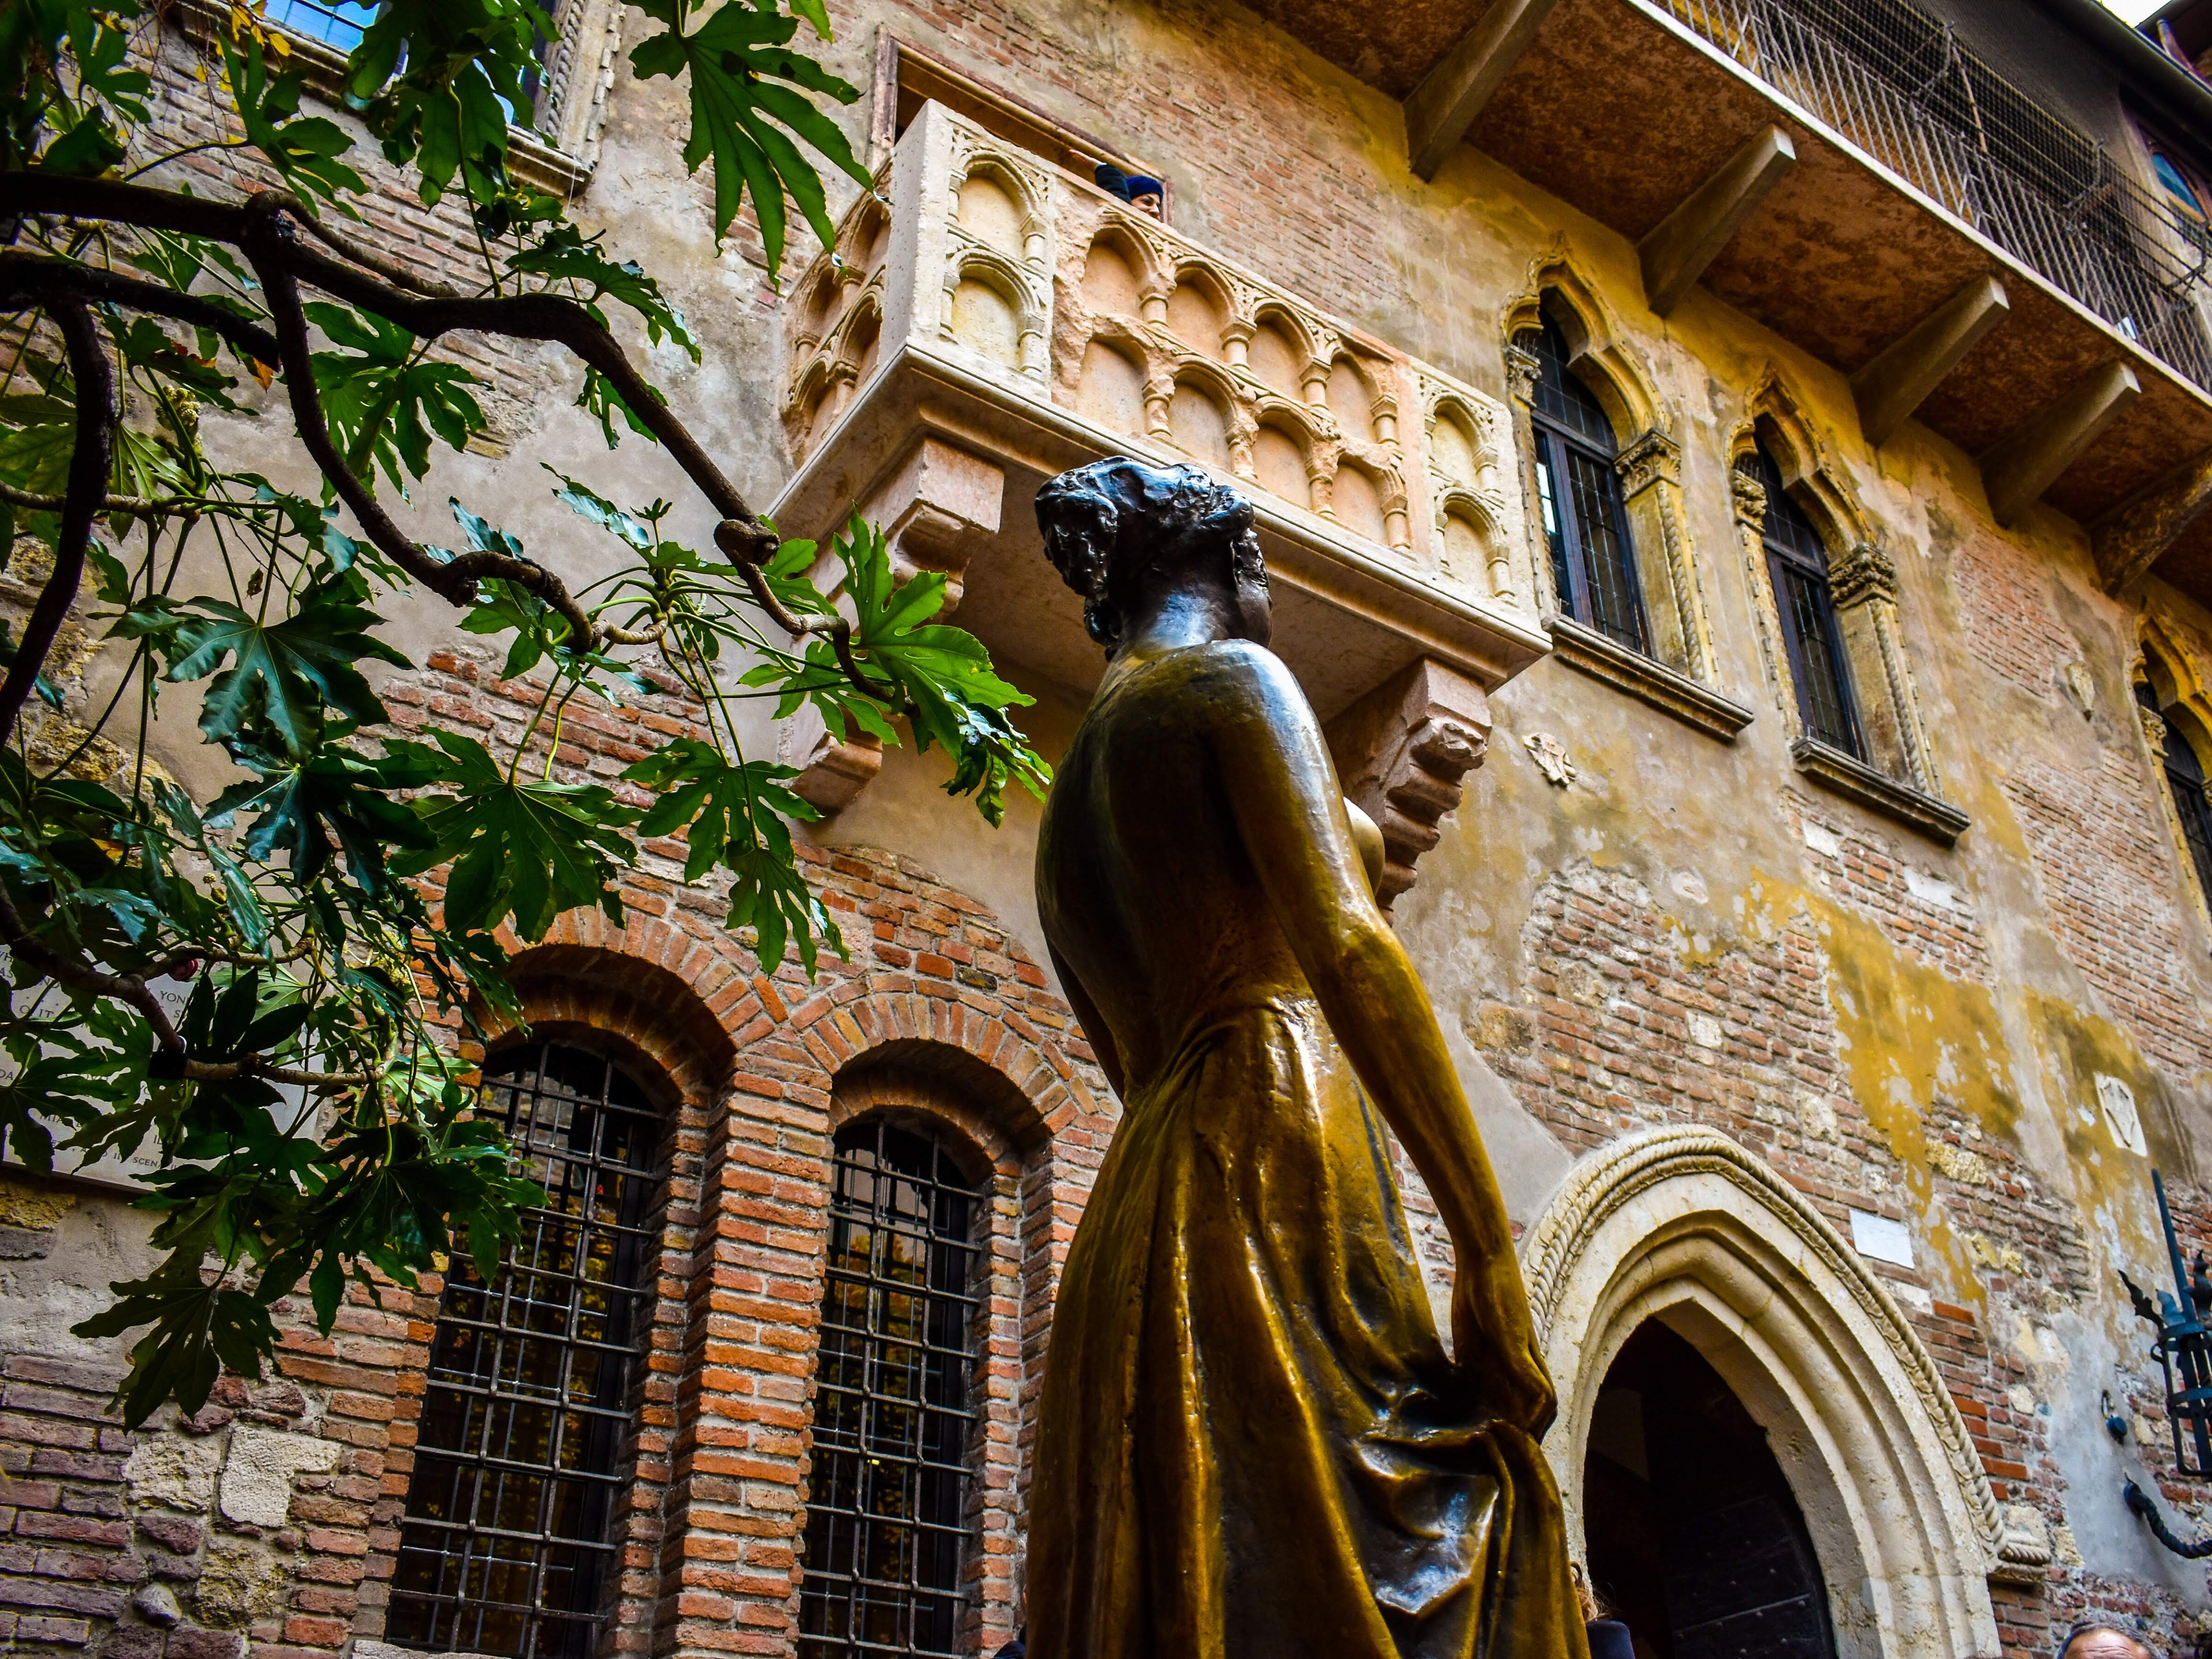 City of Verona – the city of Romeo and Juliet